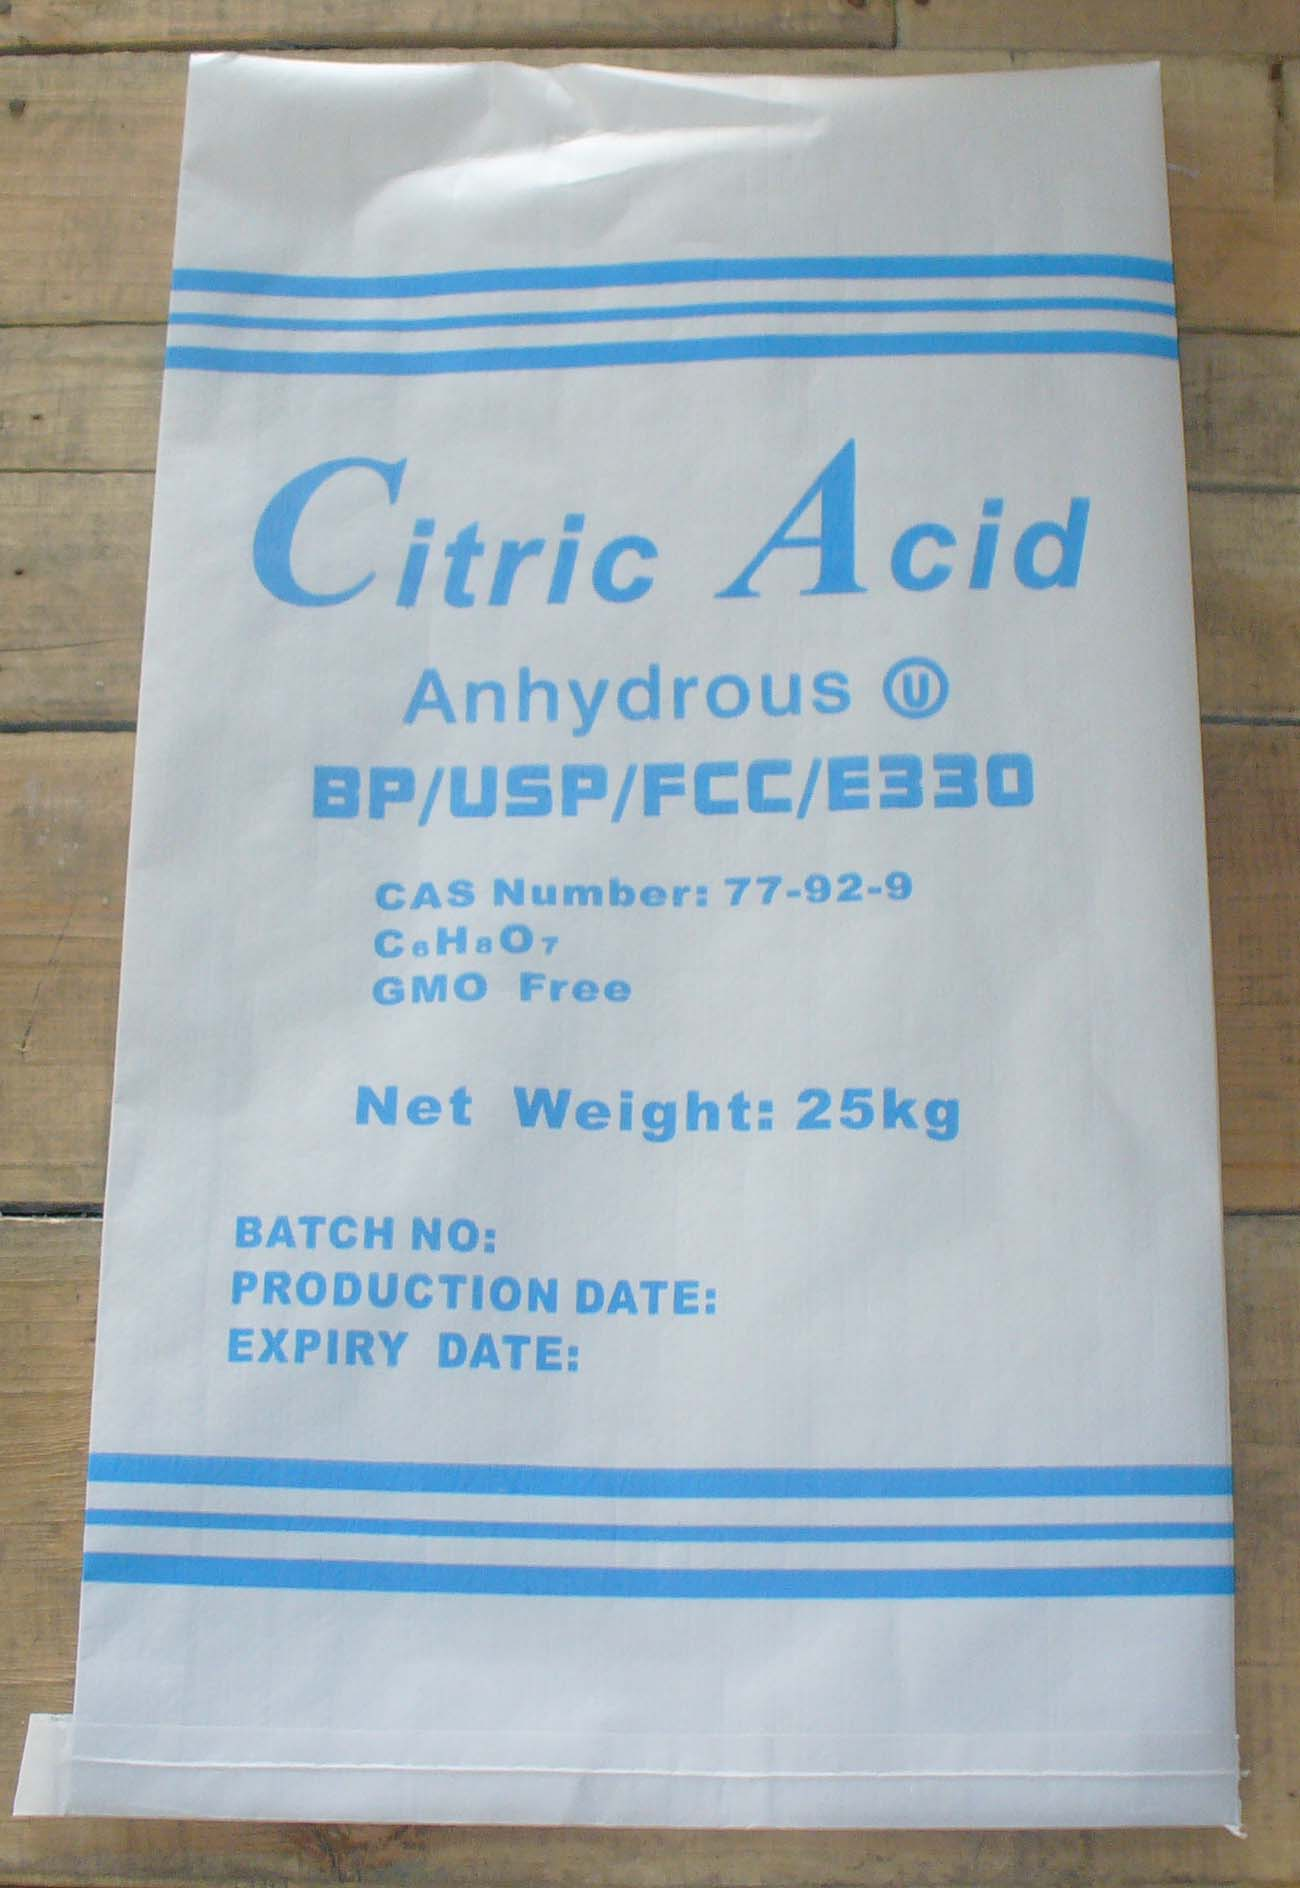 Citric Acid Anhydrouse